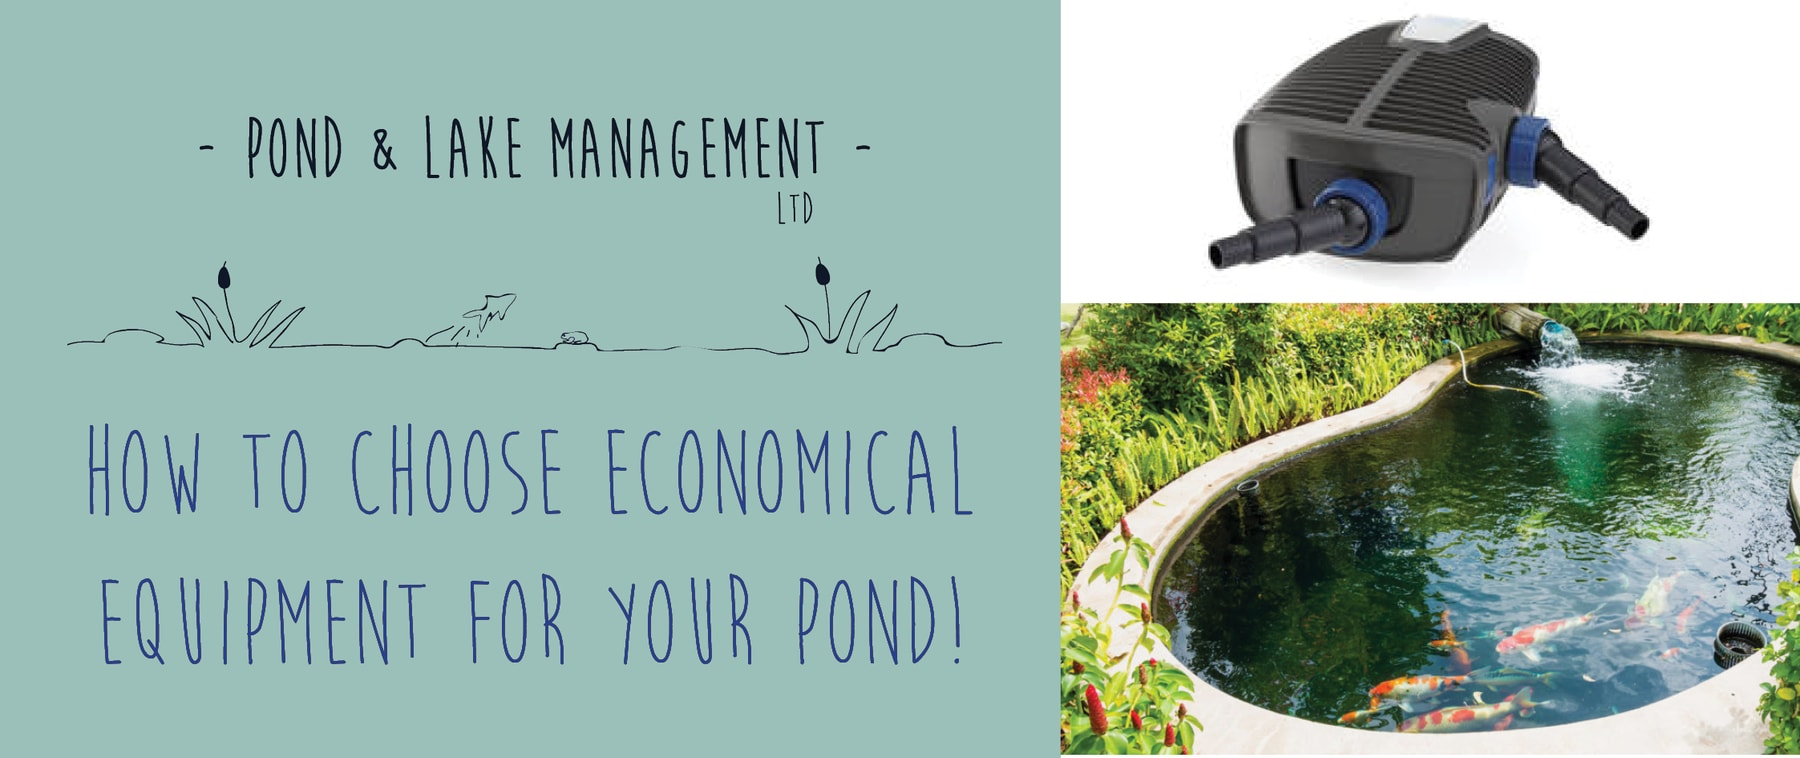 how to choose economical equipment for your pond! | pond